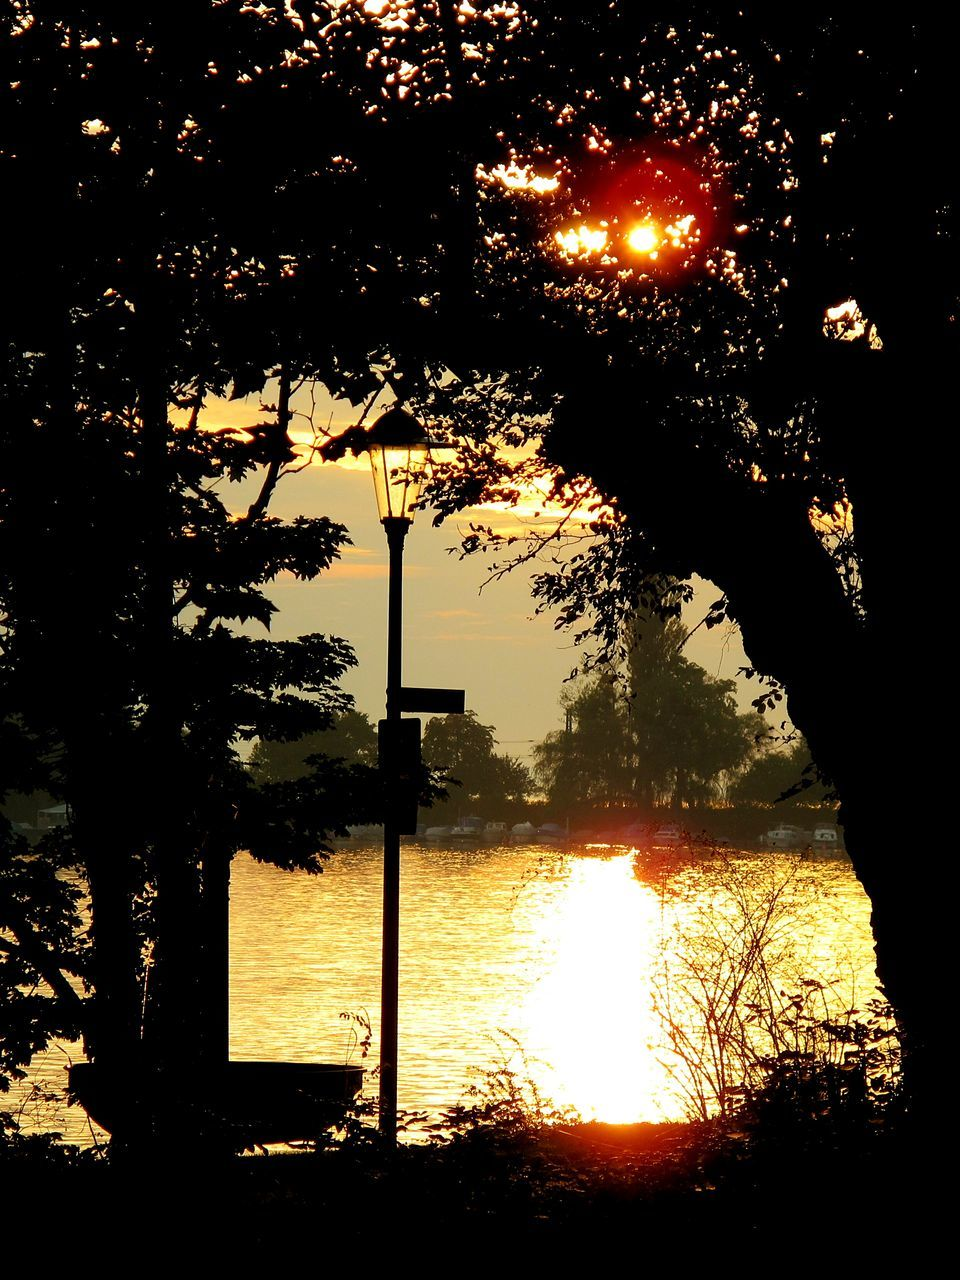 tree, silhouette, sunset, water, nature, no people, growth, tree trunk, outdoors, lake, tranquil scene, beauty in nature, scenics, sky, illuminated, day